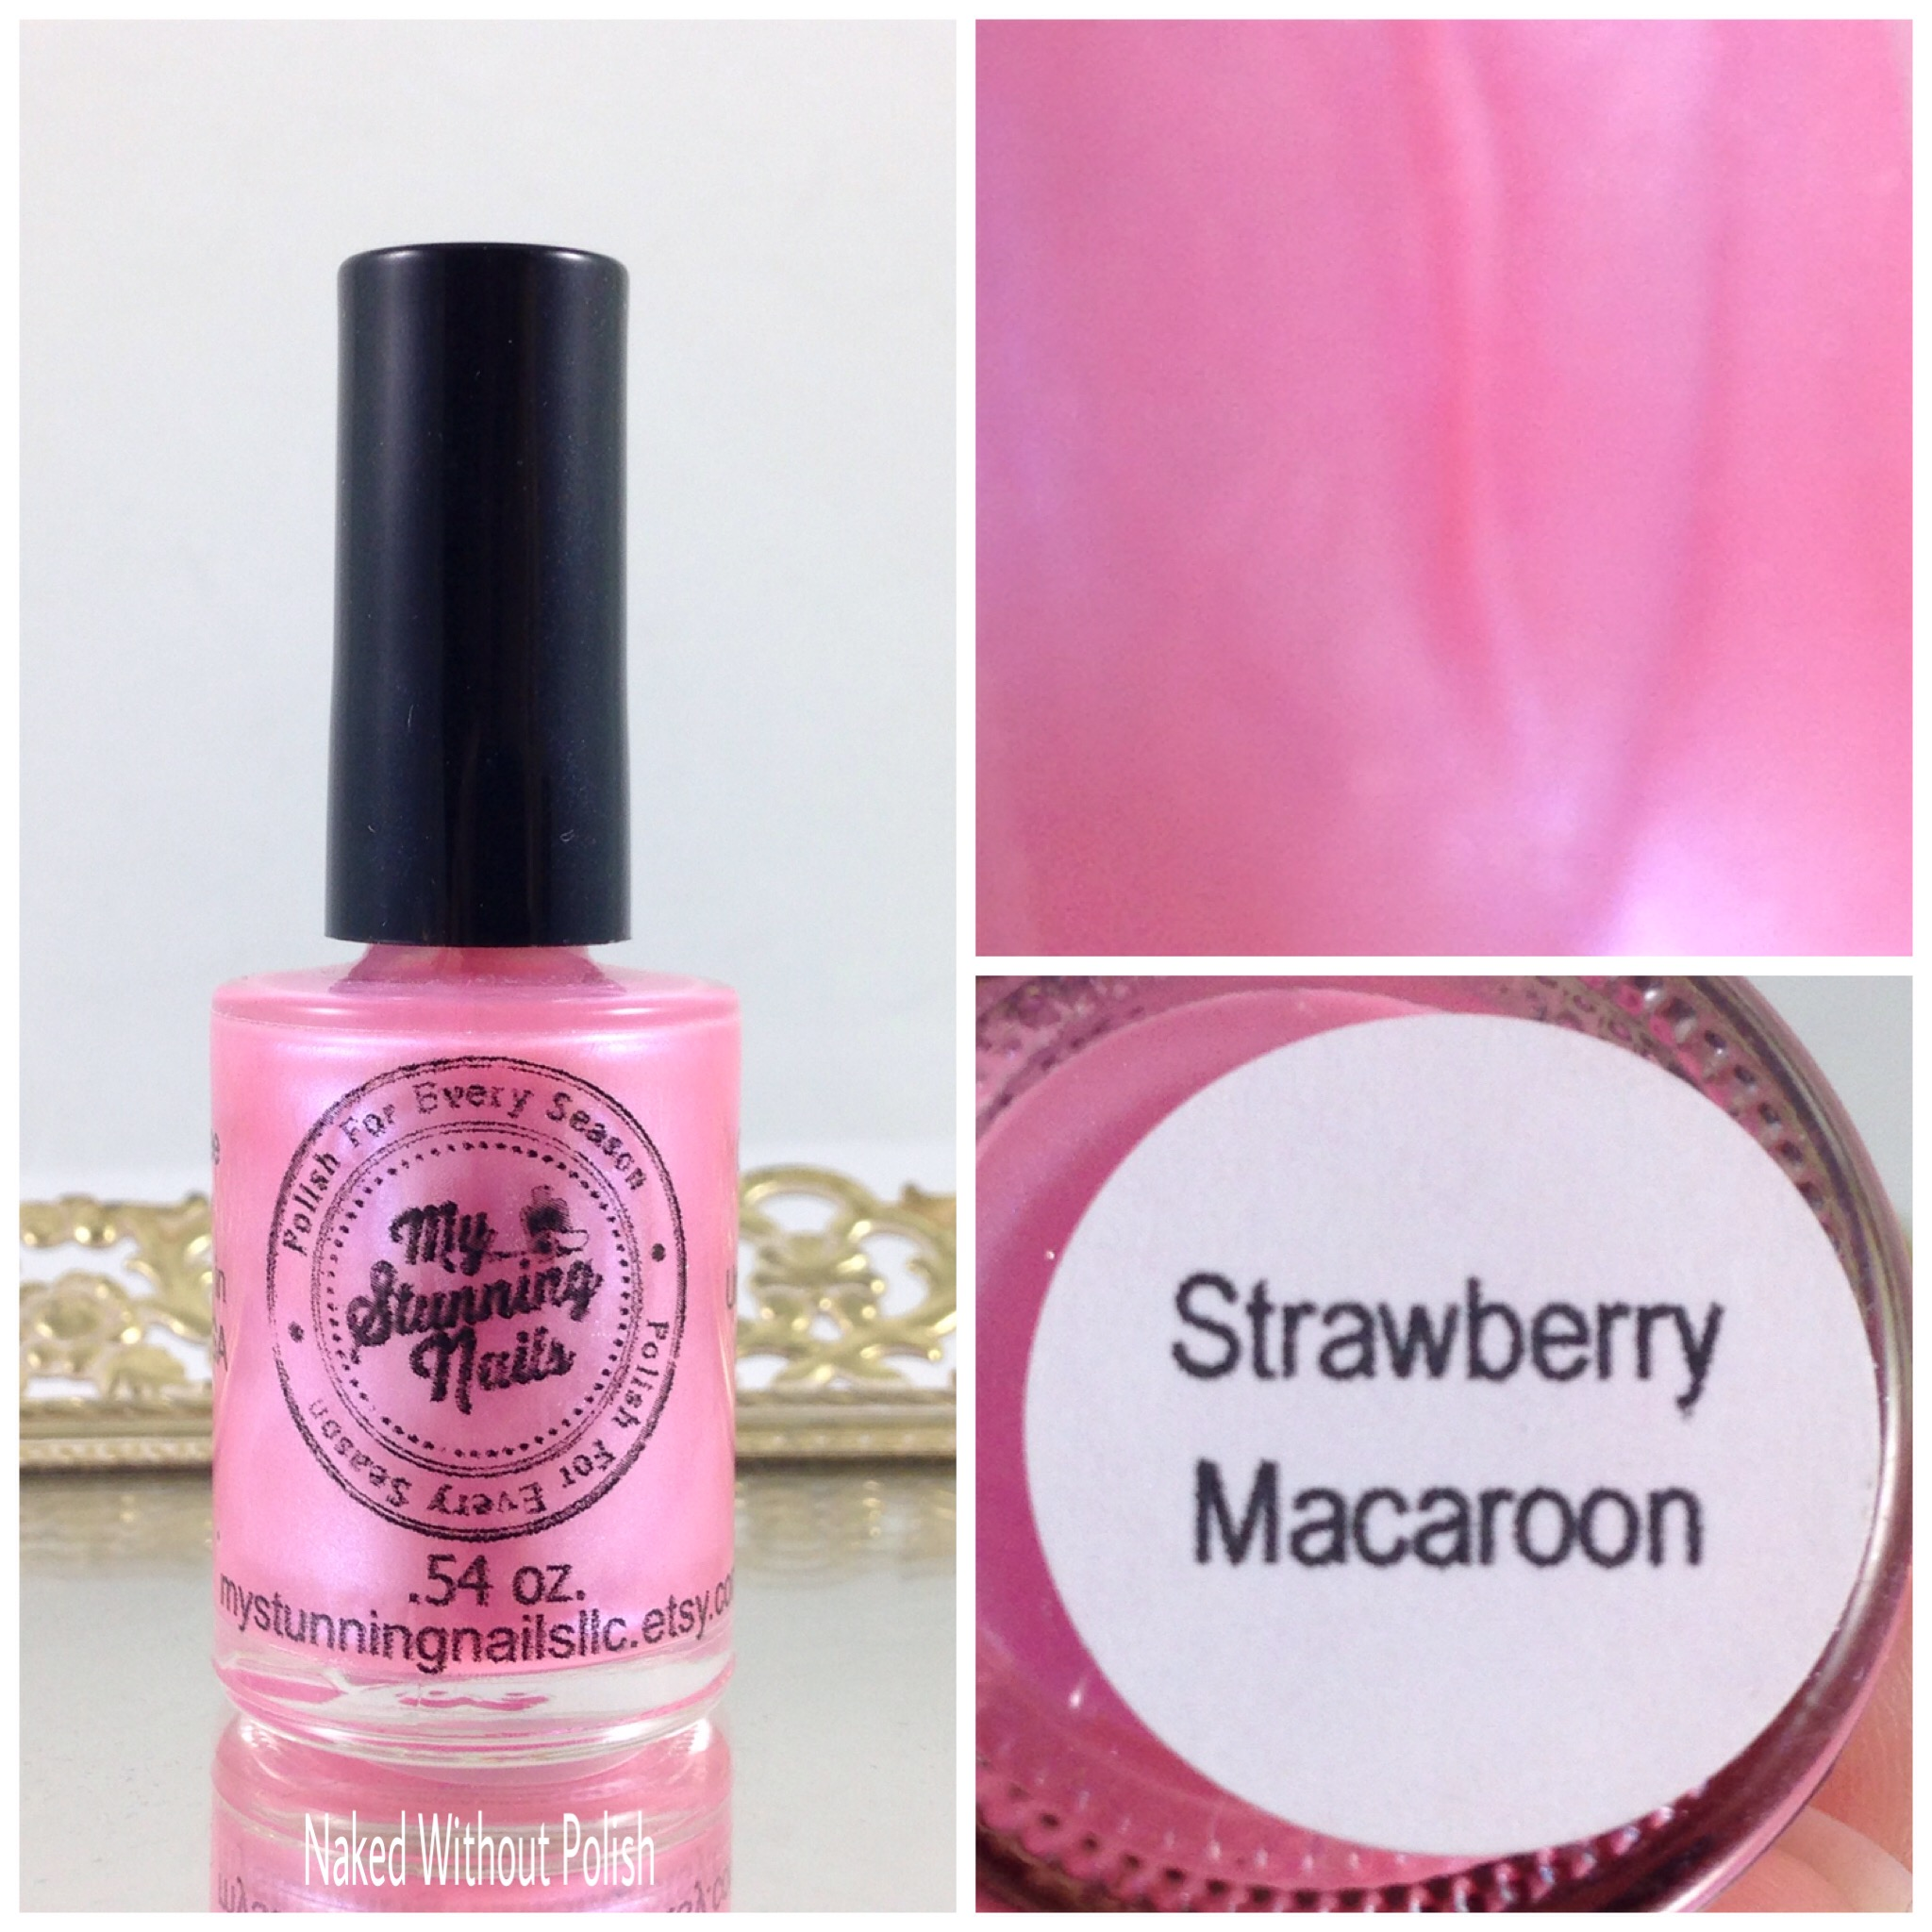 My-Stunning-Nails-Strawberry-Macaroon-1